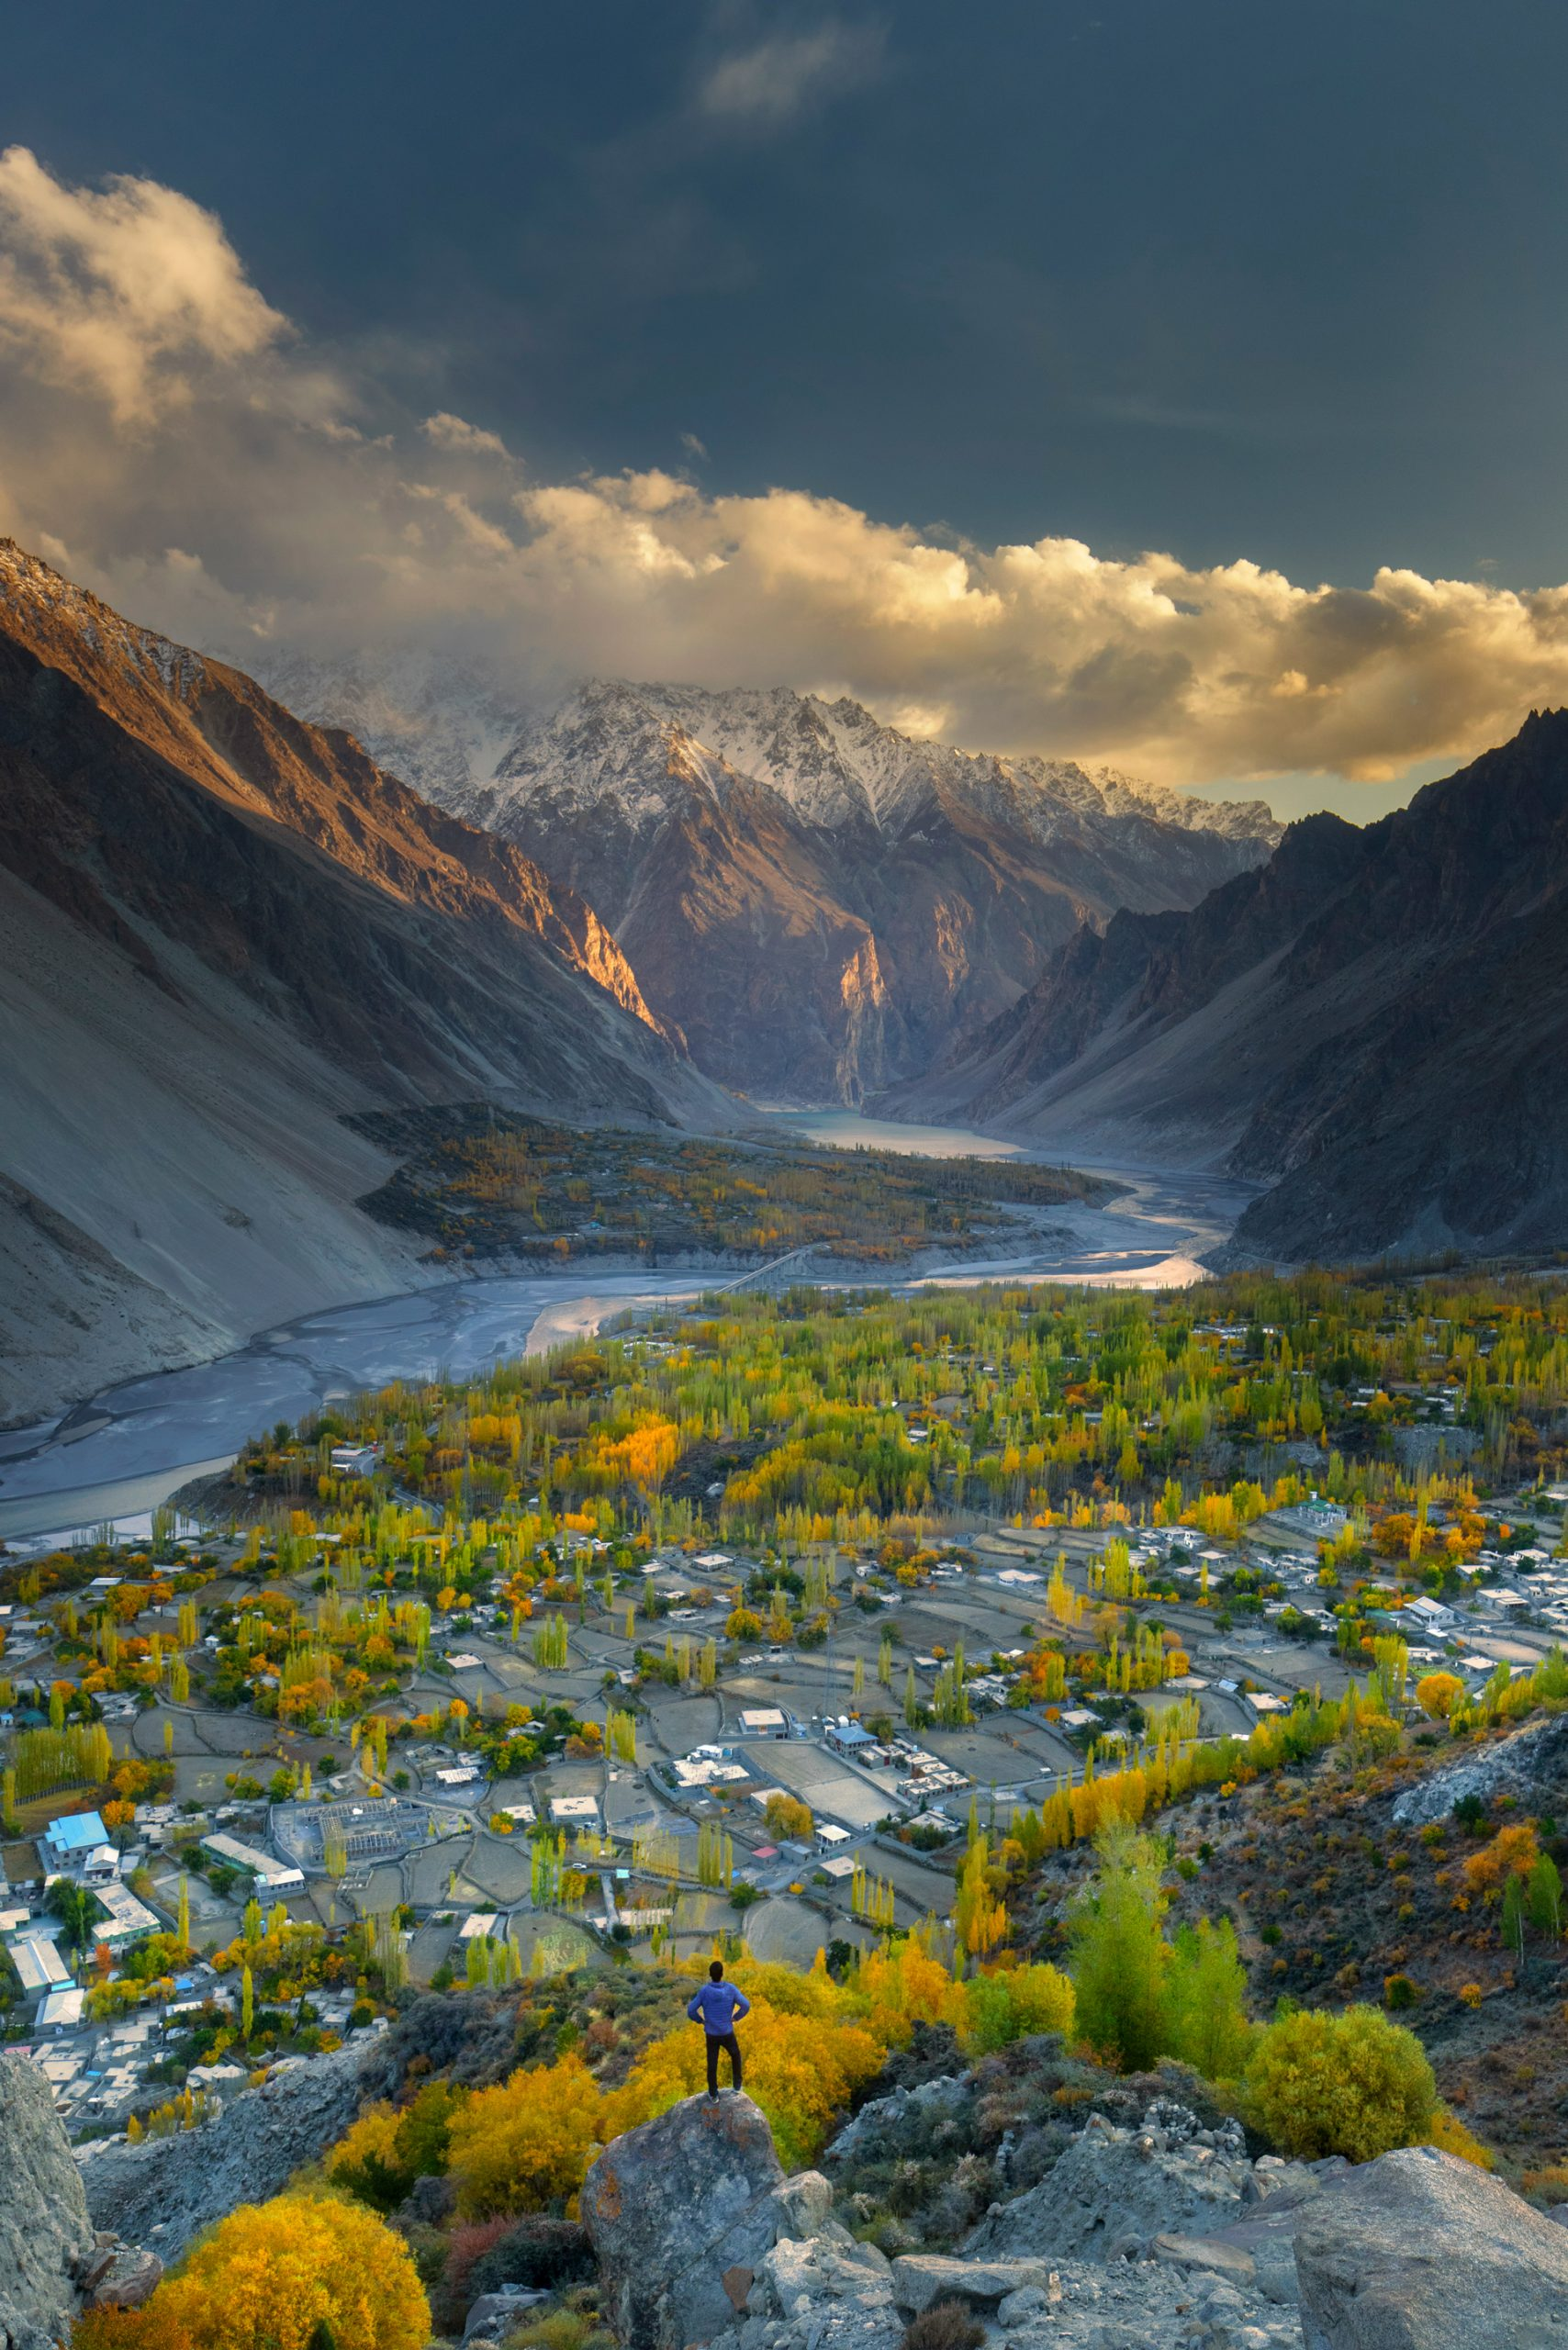 Autumn colours in Gul-e-Gulmit, as seen from Ondra Fort